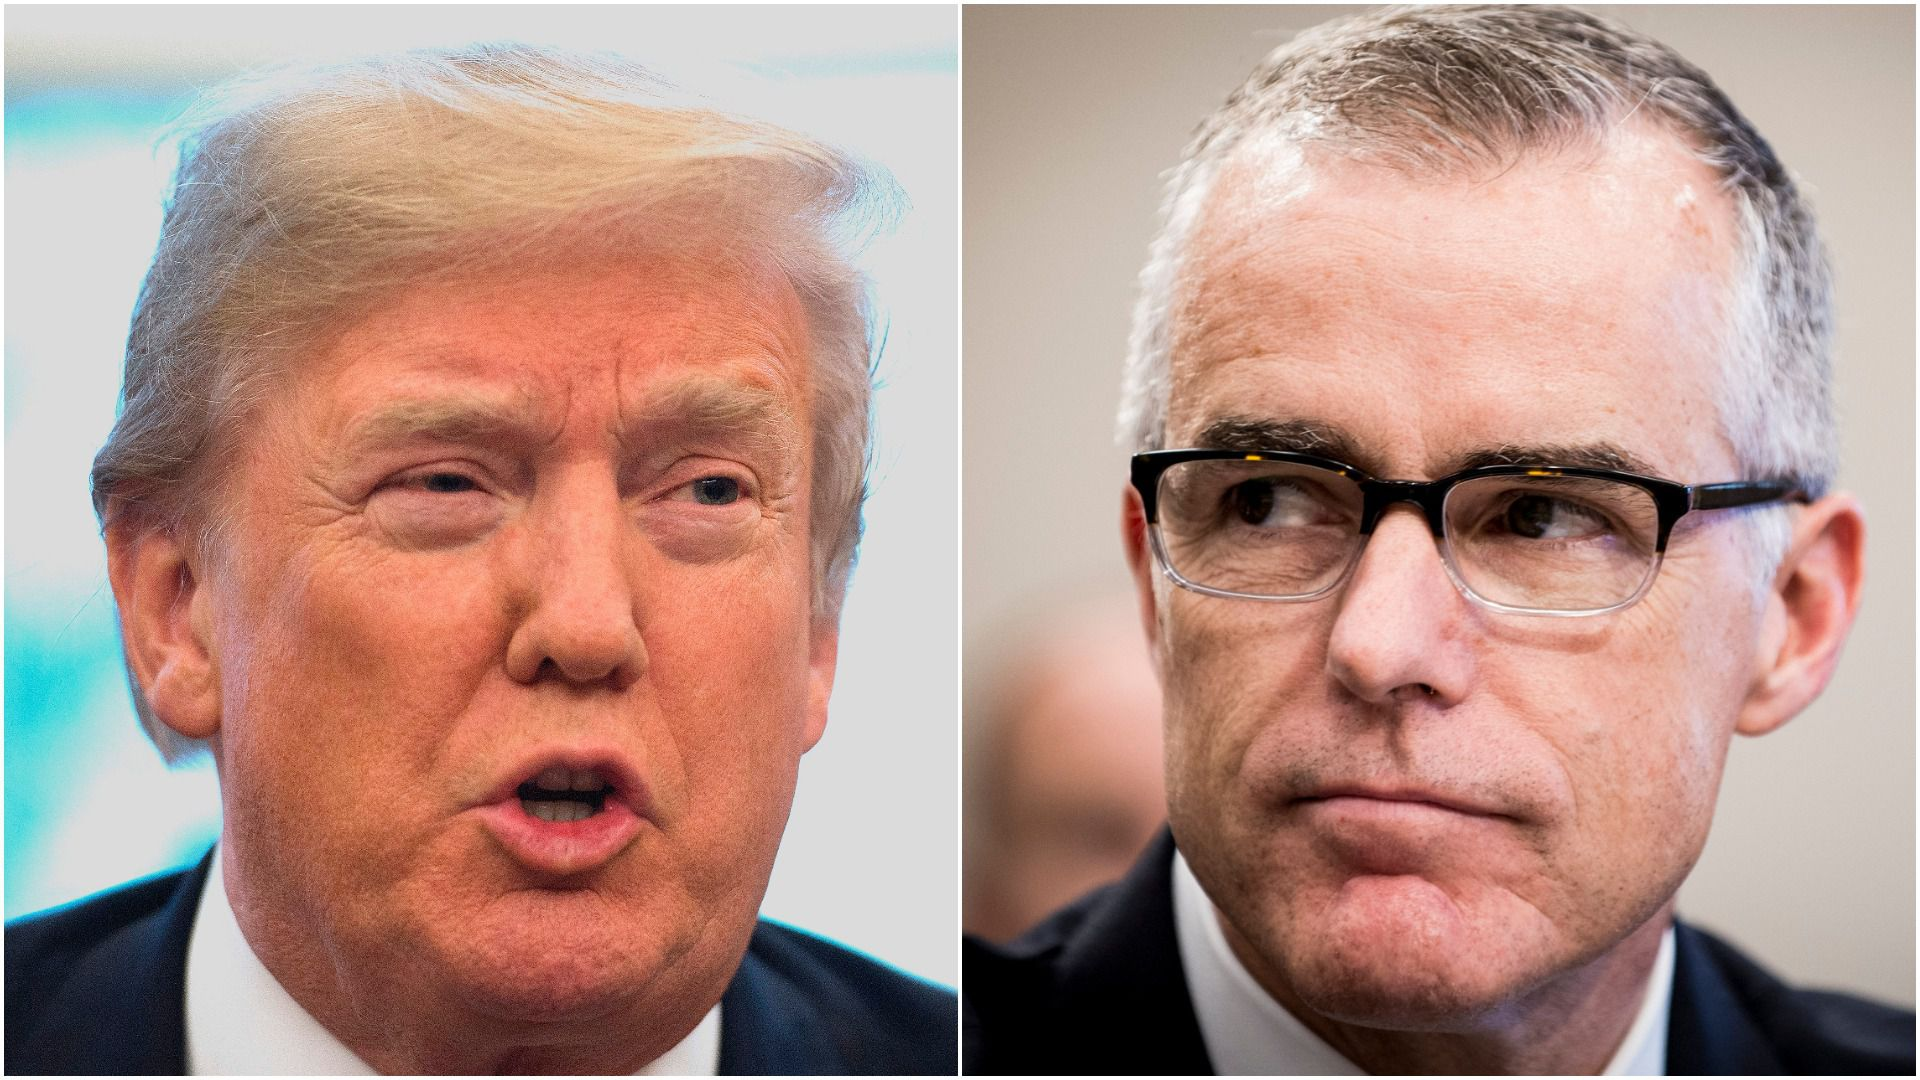 PAYBACK Trump Celebrates McCabe Firing in Vicious Take Down of Former FBI Boss A Great Day for Democracy